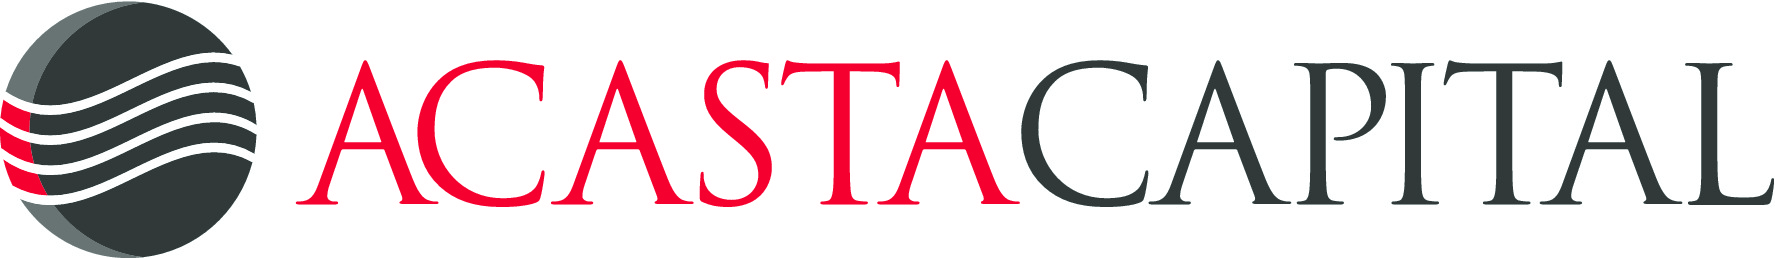 enhanced resolution Acasta logo.jpg